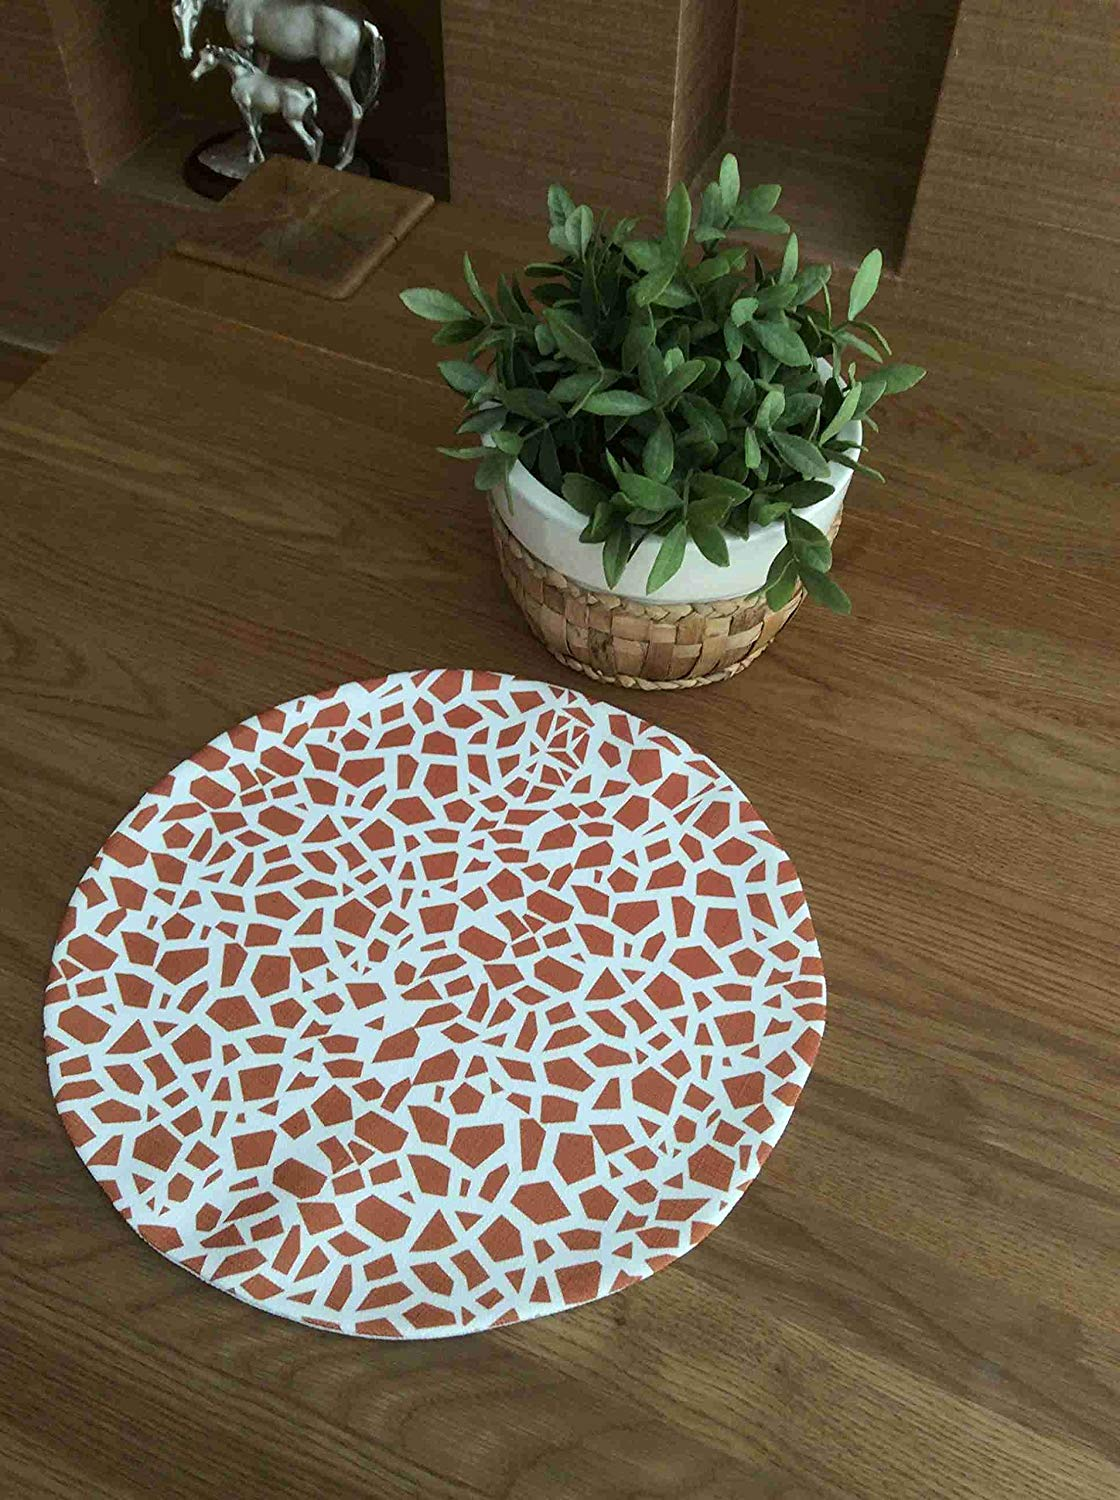 "TekgulDesign Giraffe Placemats,%100 Polyester, Handmade, Diameter: 35cm (14""), Crease Resistant and Stain-Proof Fabric, Modern and Colorful Ultra HD Graphics."